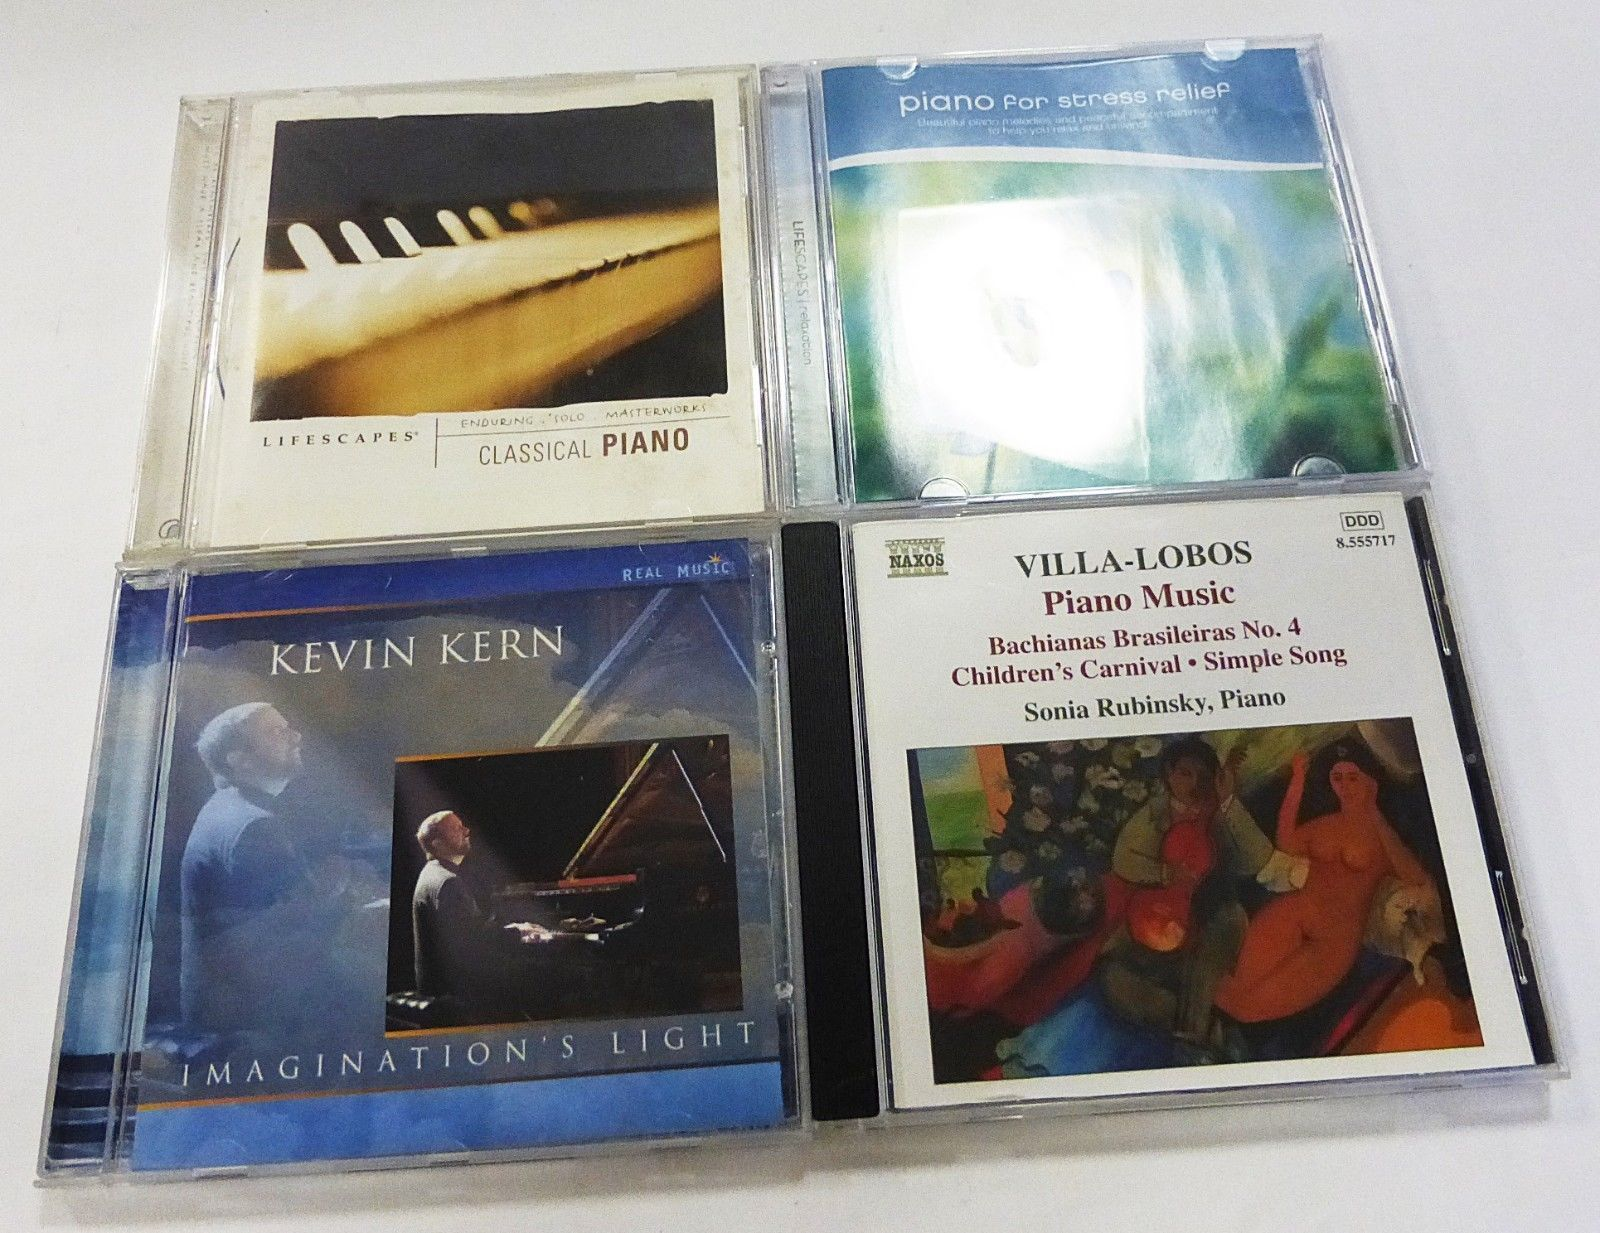 Lot of piano classical music set of 4 CD used Kevin Kern Imaginatio's Light